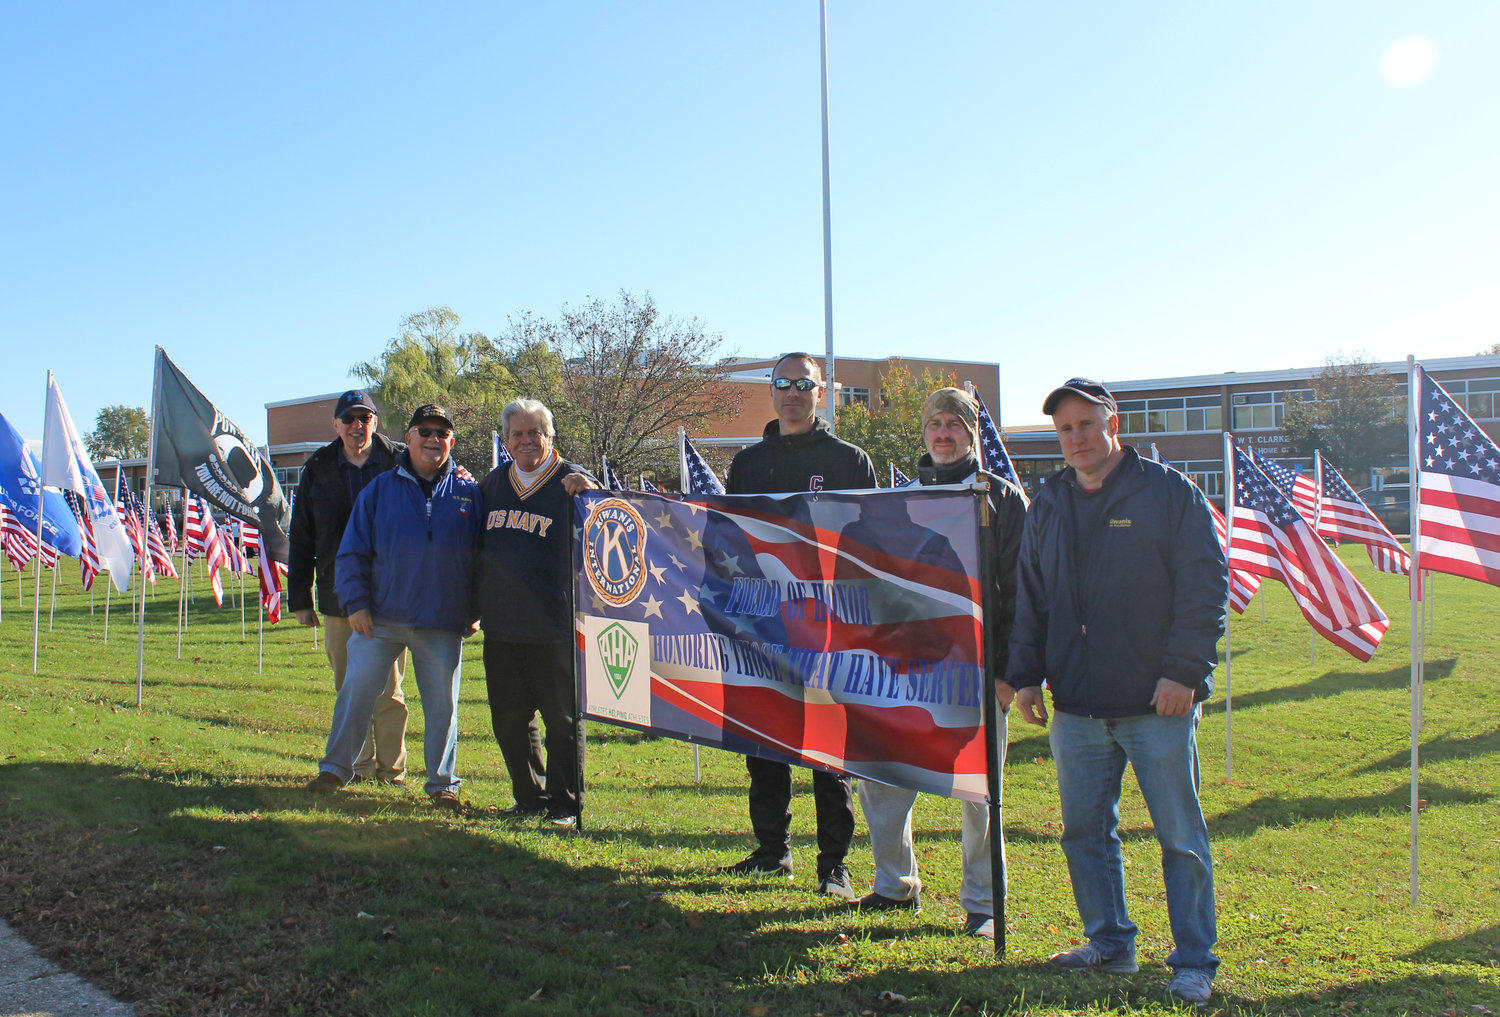 East Meadow Kiwanis collaborated on the Field of Honor project with the Athletes Helping Athletes service clubs at both high schools.